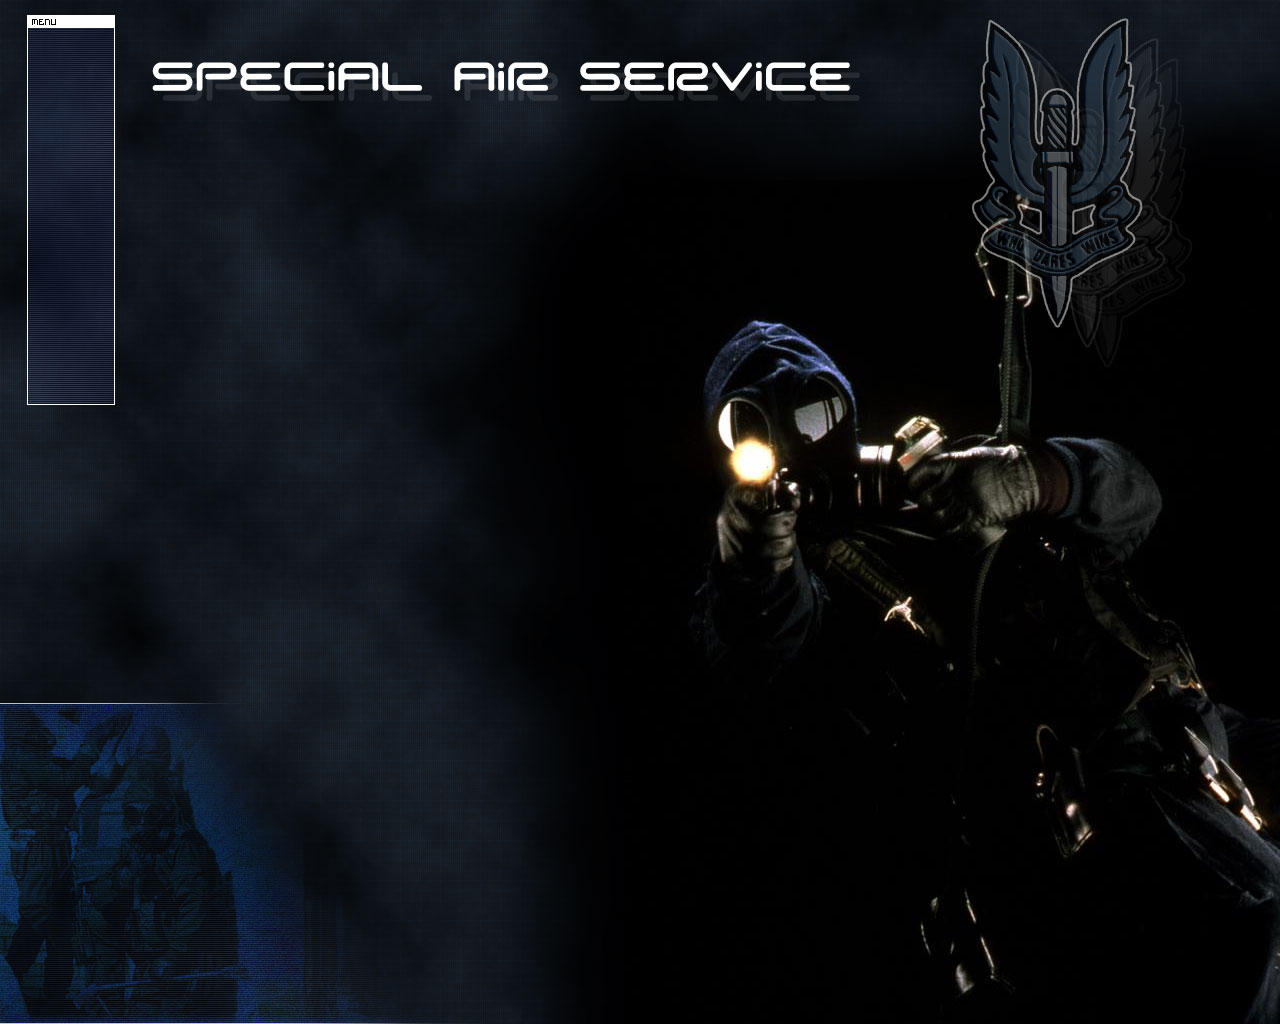 special air service wallpaper - photo #5